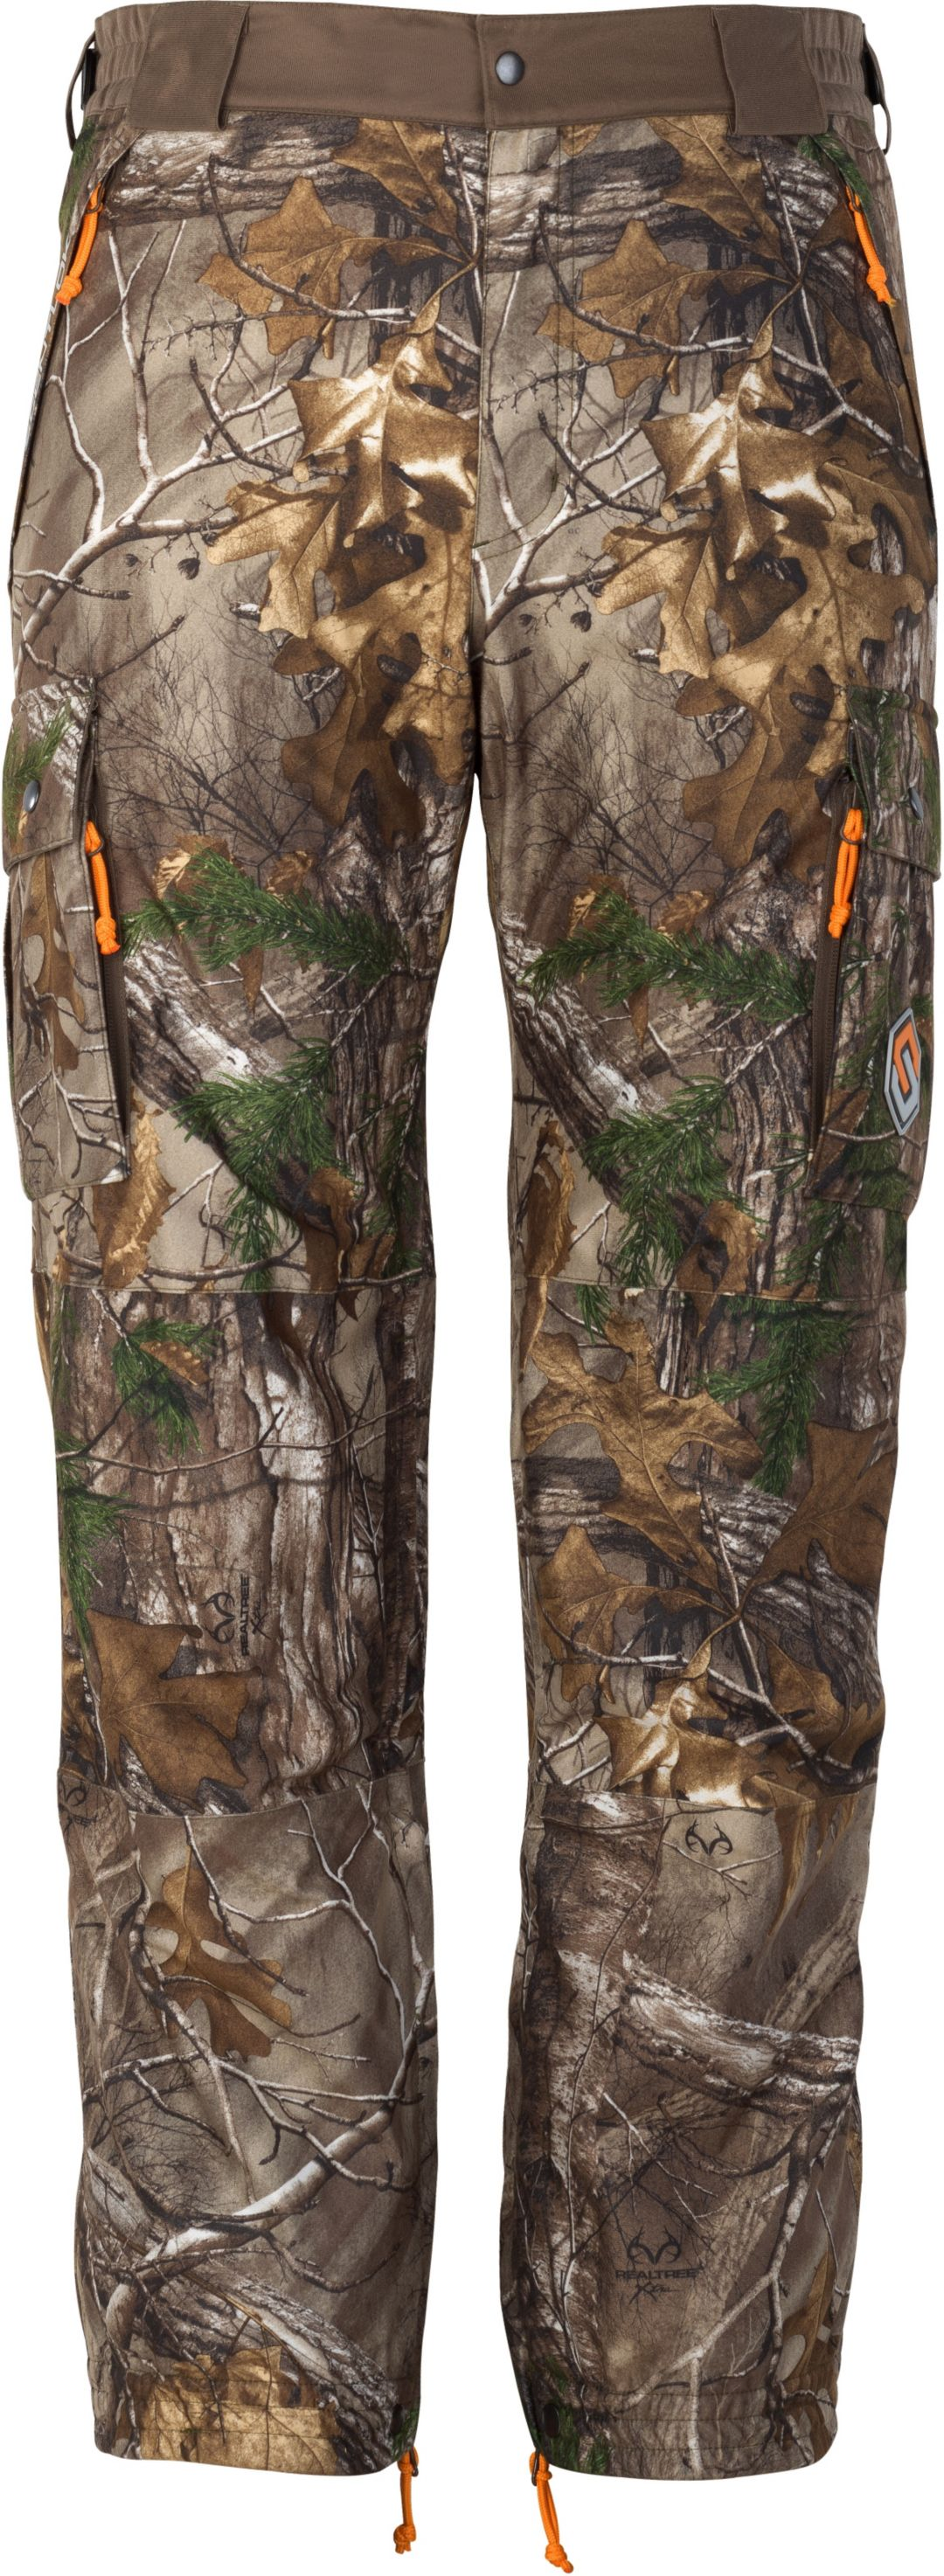 1c50cc1e4eb59 ScentLok Men's Cold Blooded Hunting Pants | DICK'S Sporting Goods